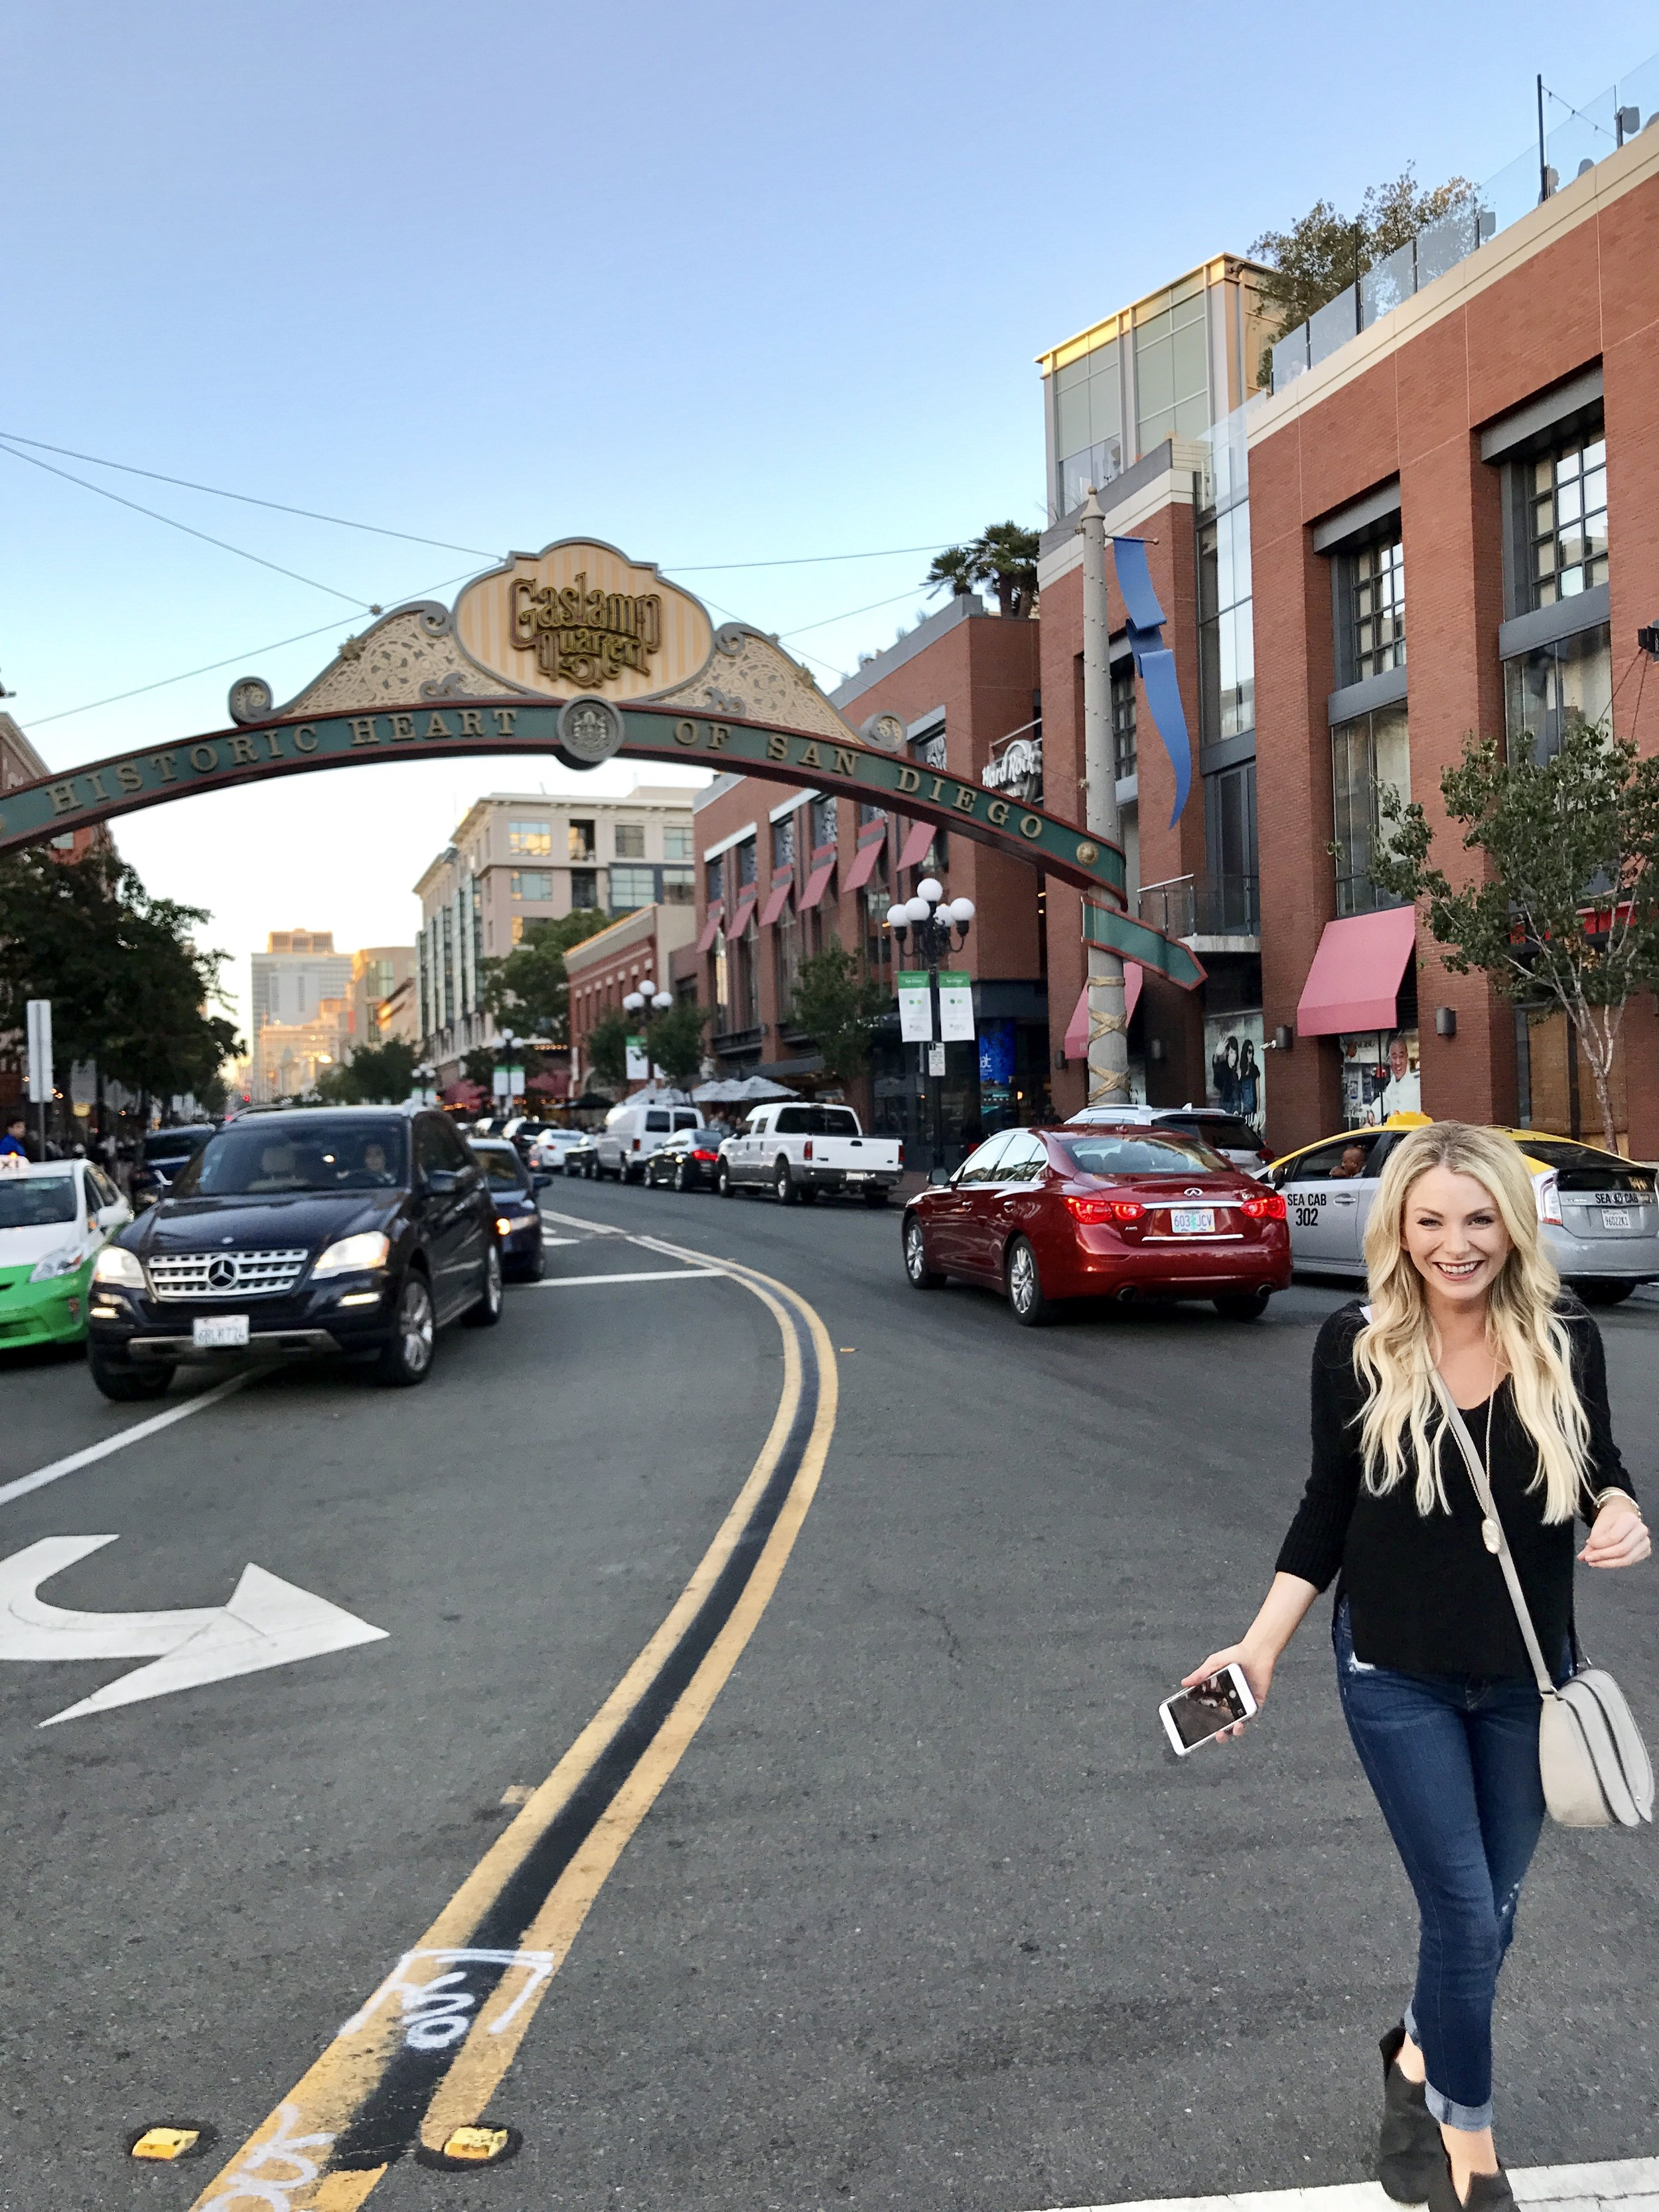 The Gaslamp has tons of restaurants and shopping!